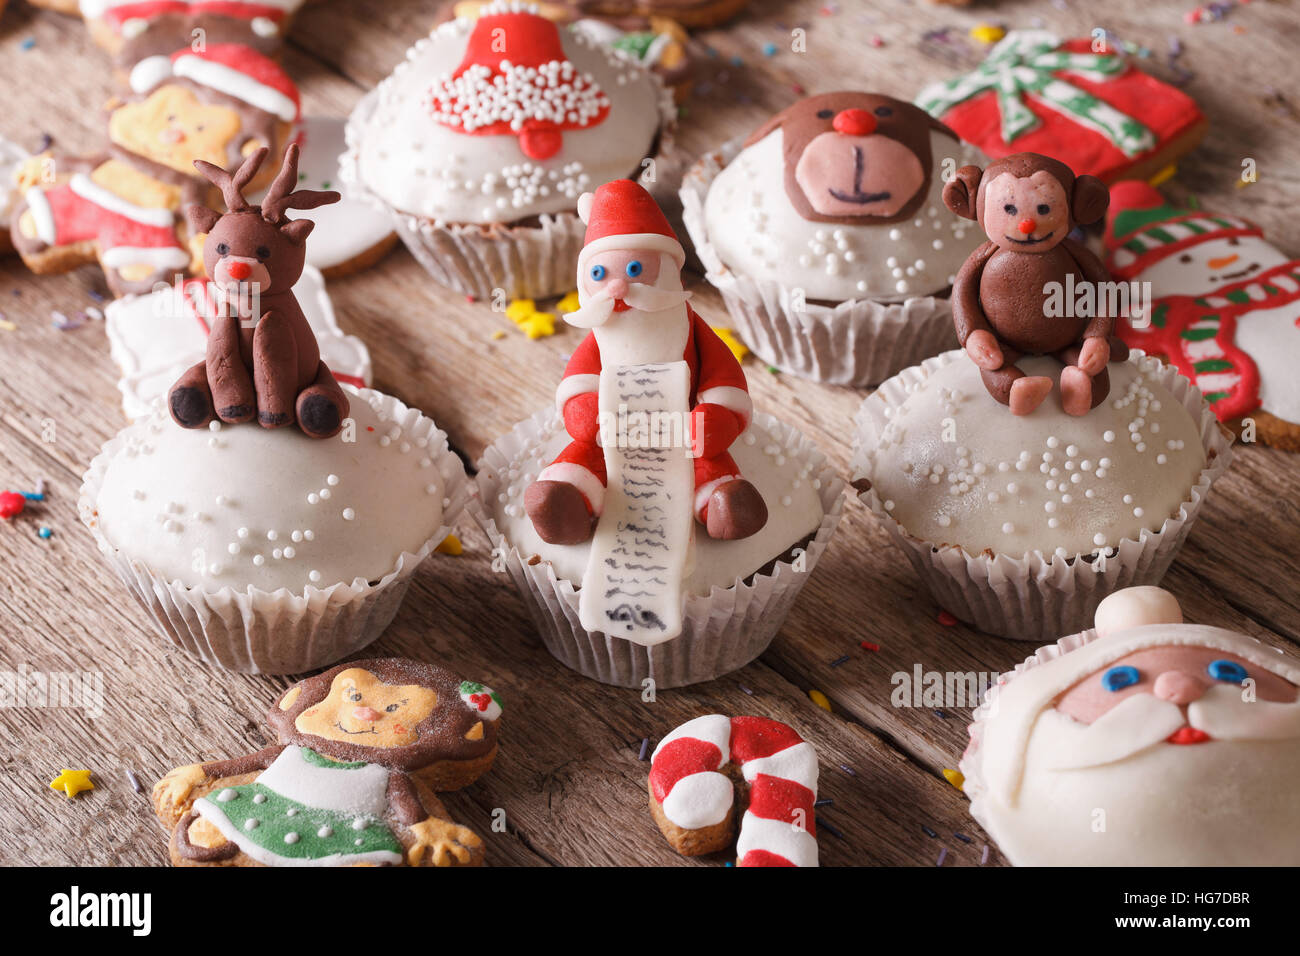 Beautiful Christmas sweets: cupcakes and gingerbread close up on a wooden table. Horizontal - Stock Image